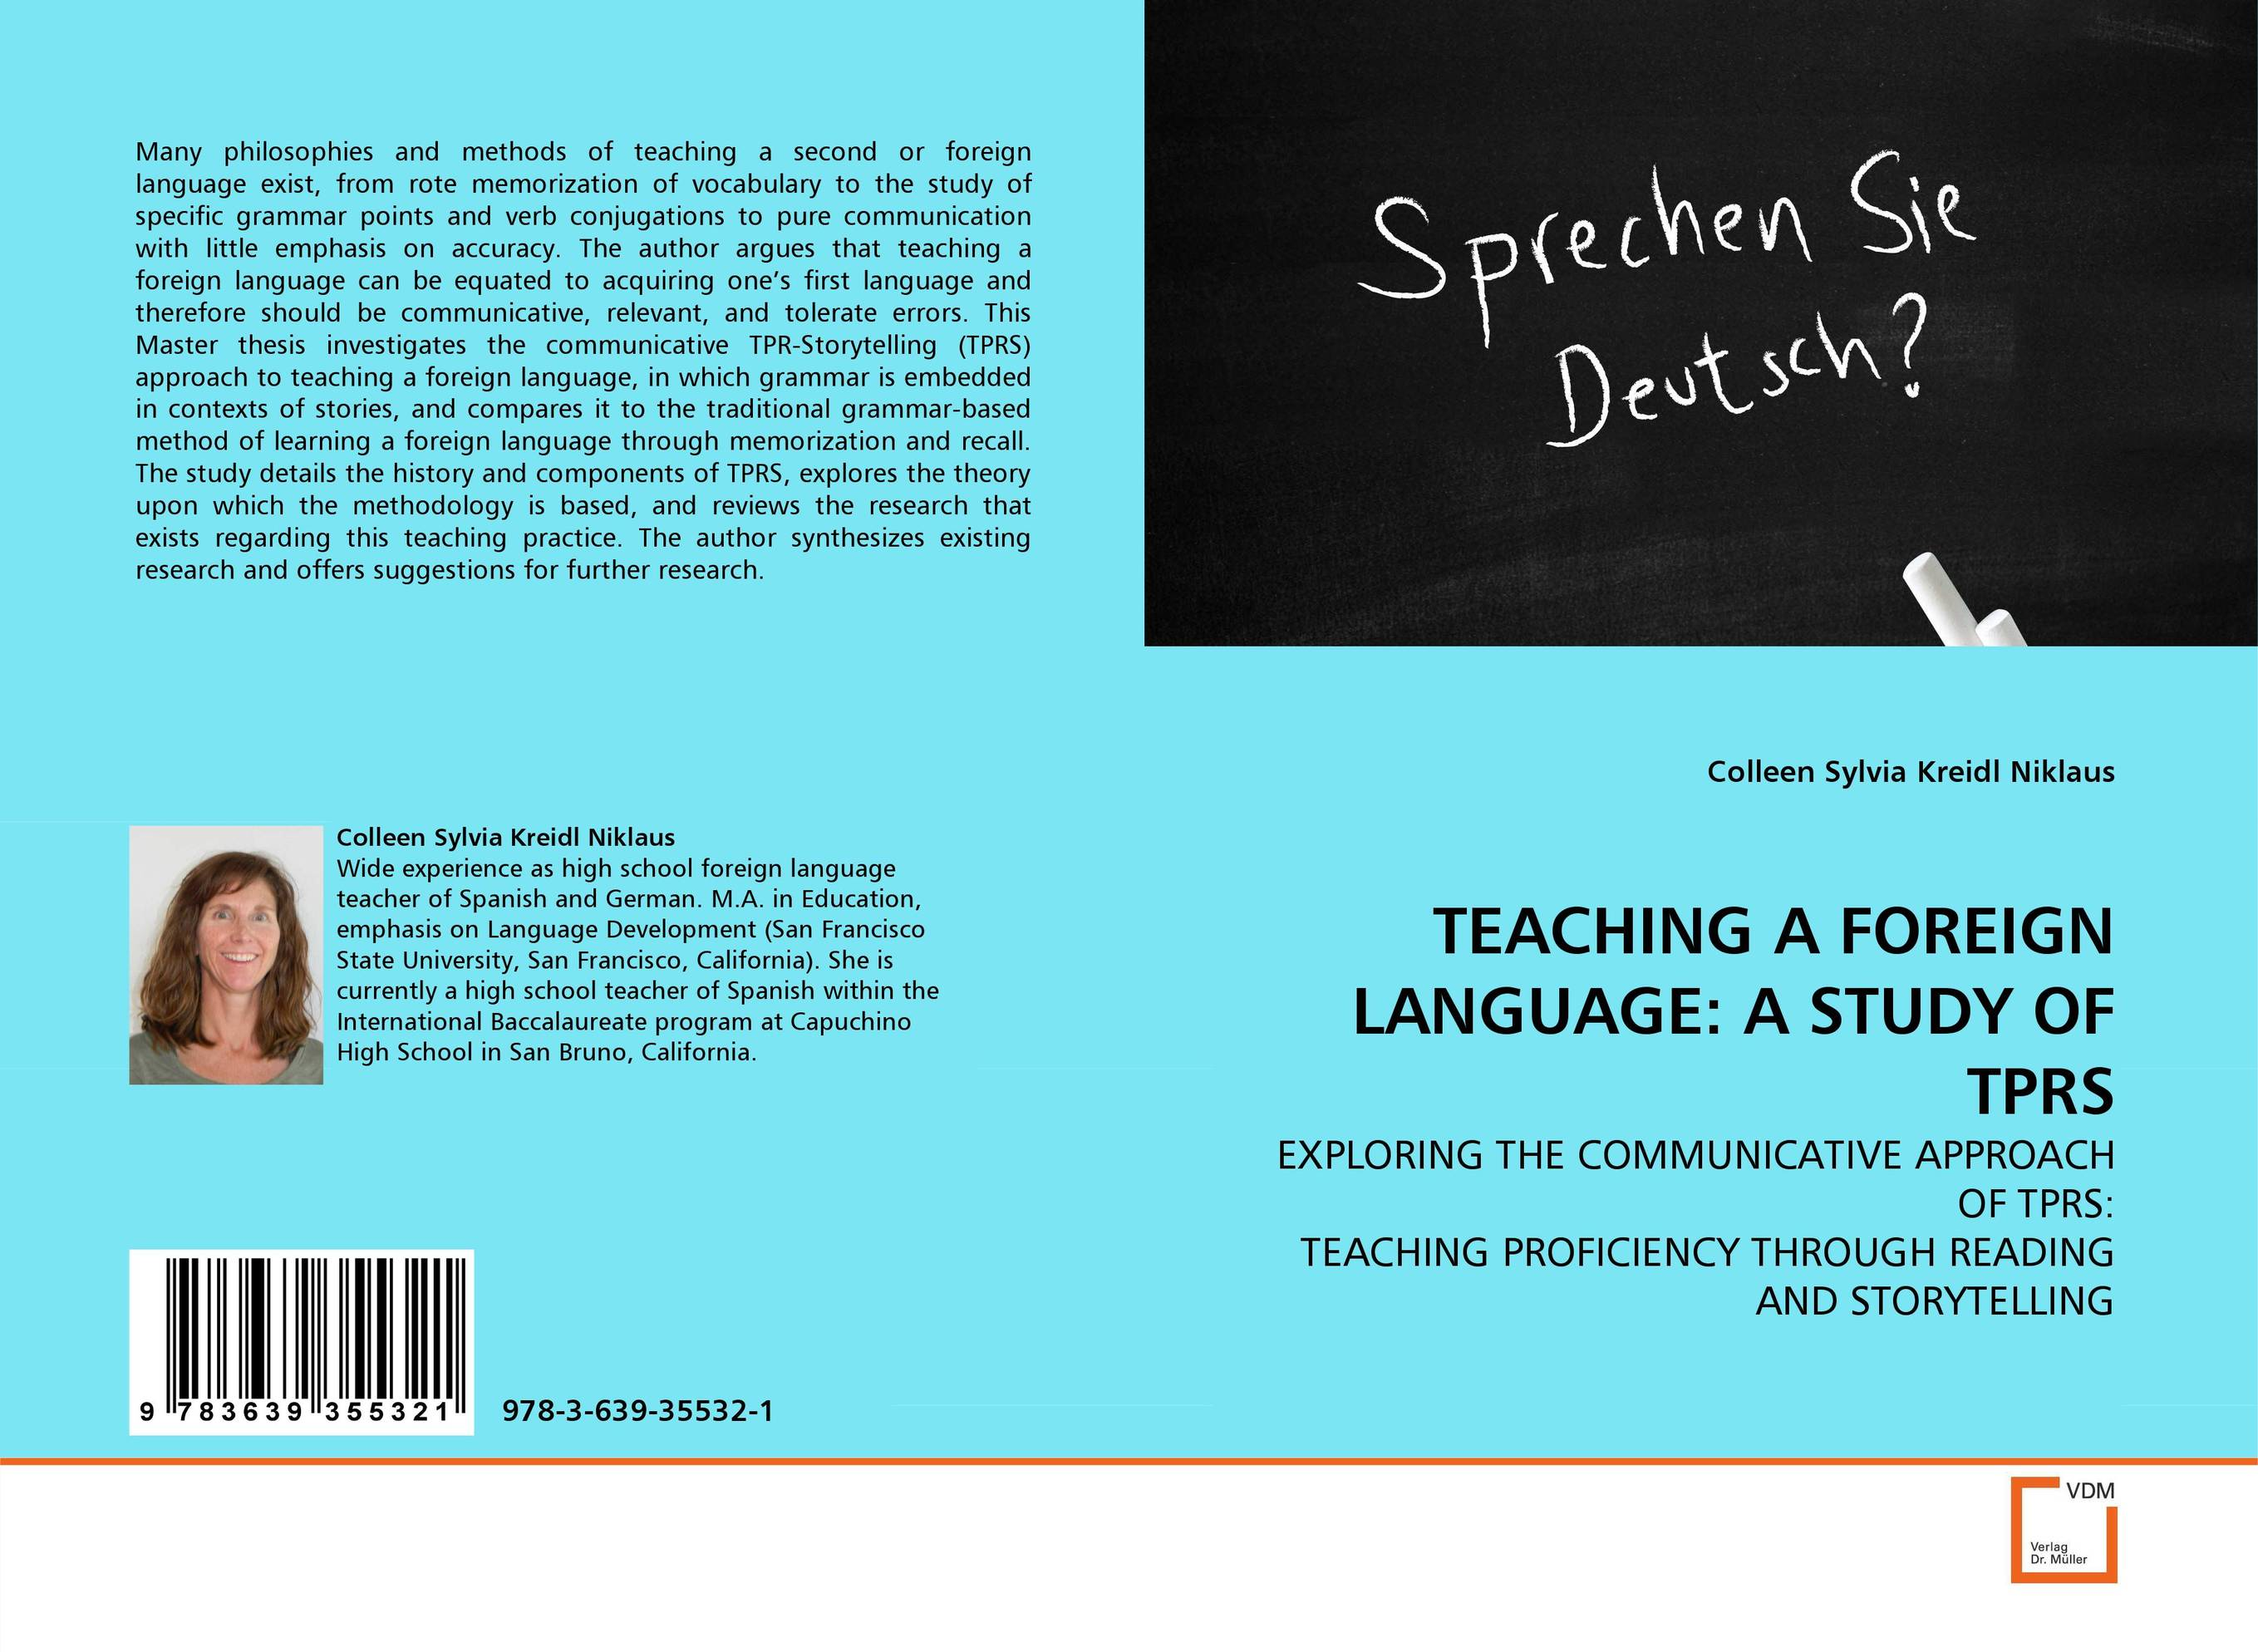 TEACHING A FOREIGN LANGUAGE: A STUDY OF TPRS a stylistic study of the language of selected greeting cards